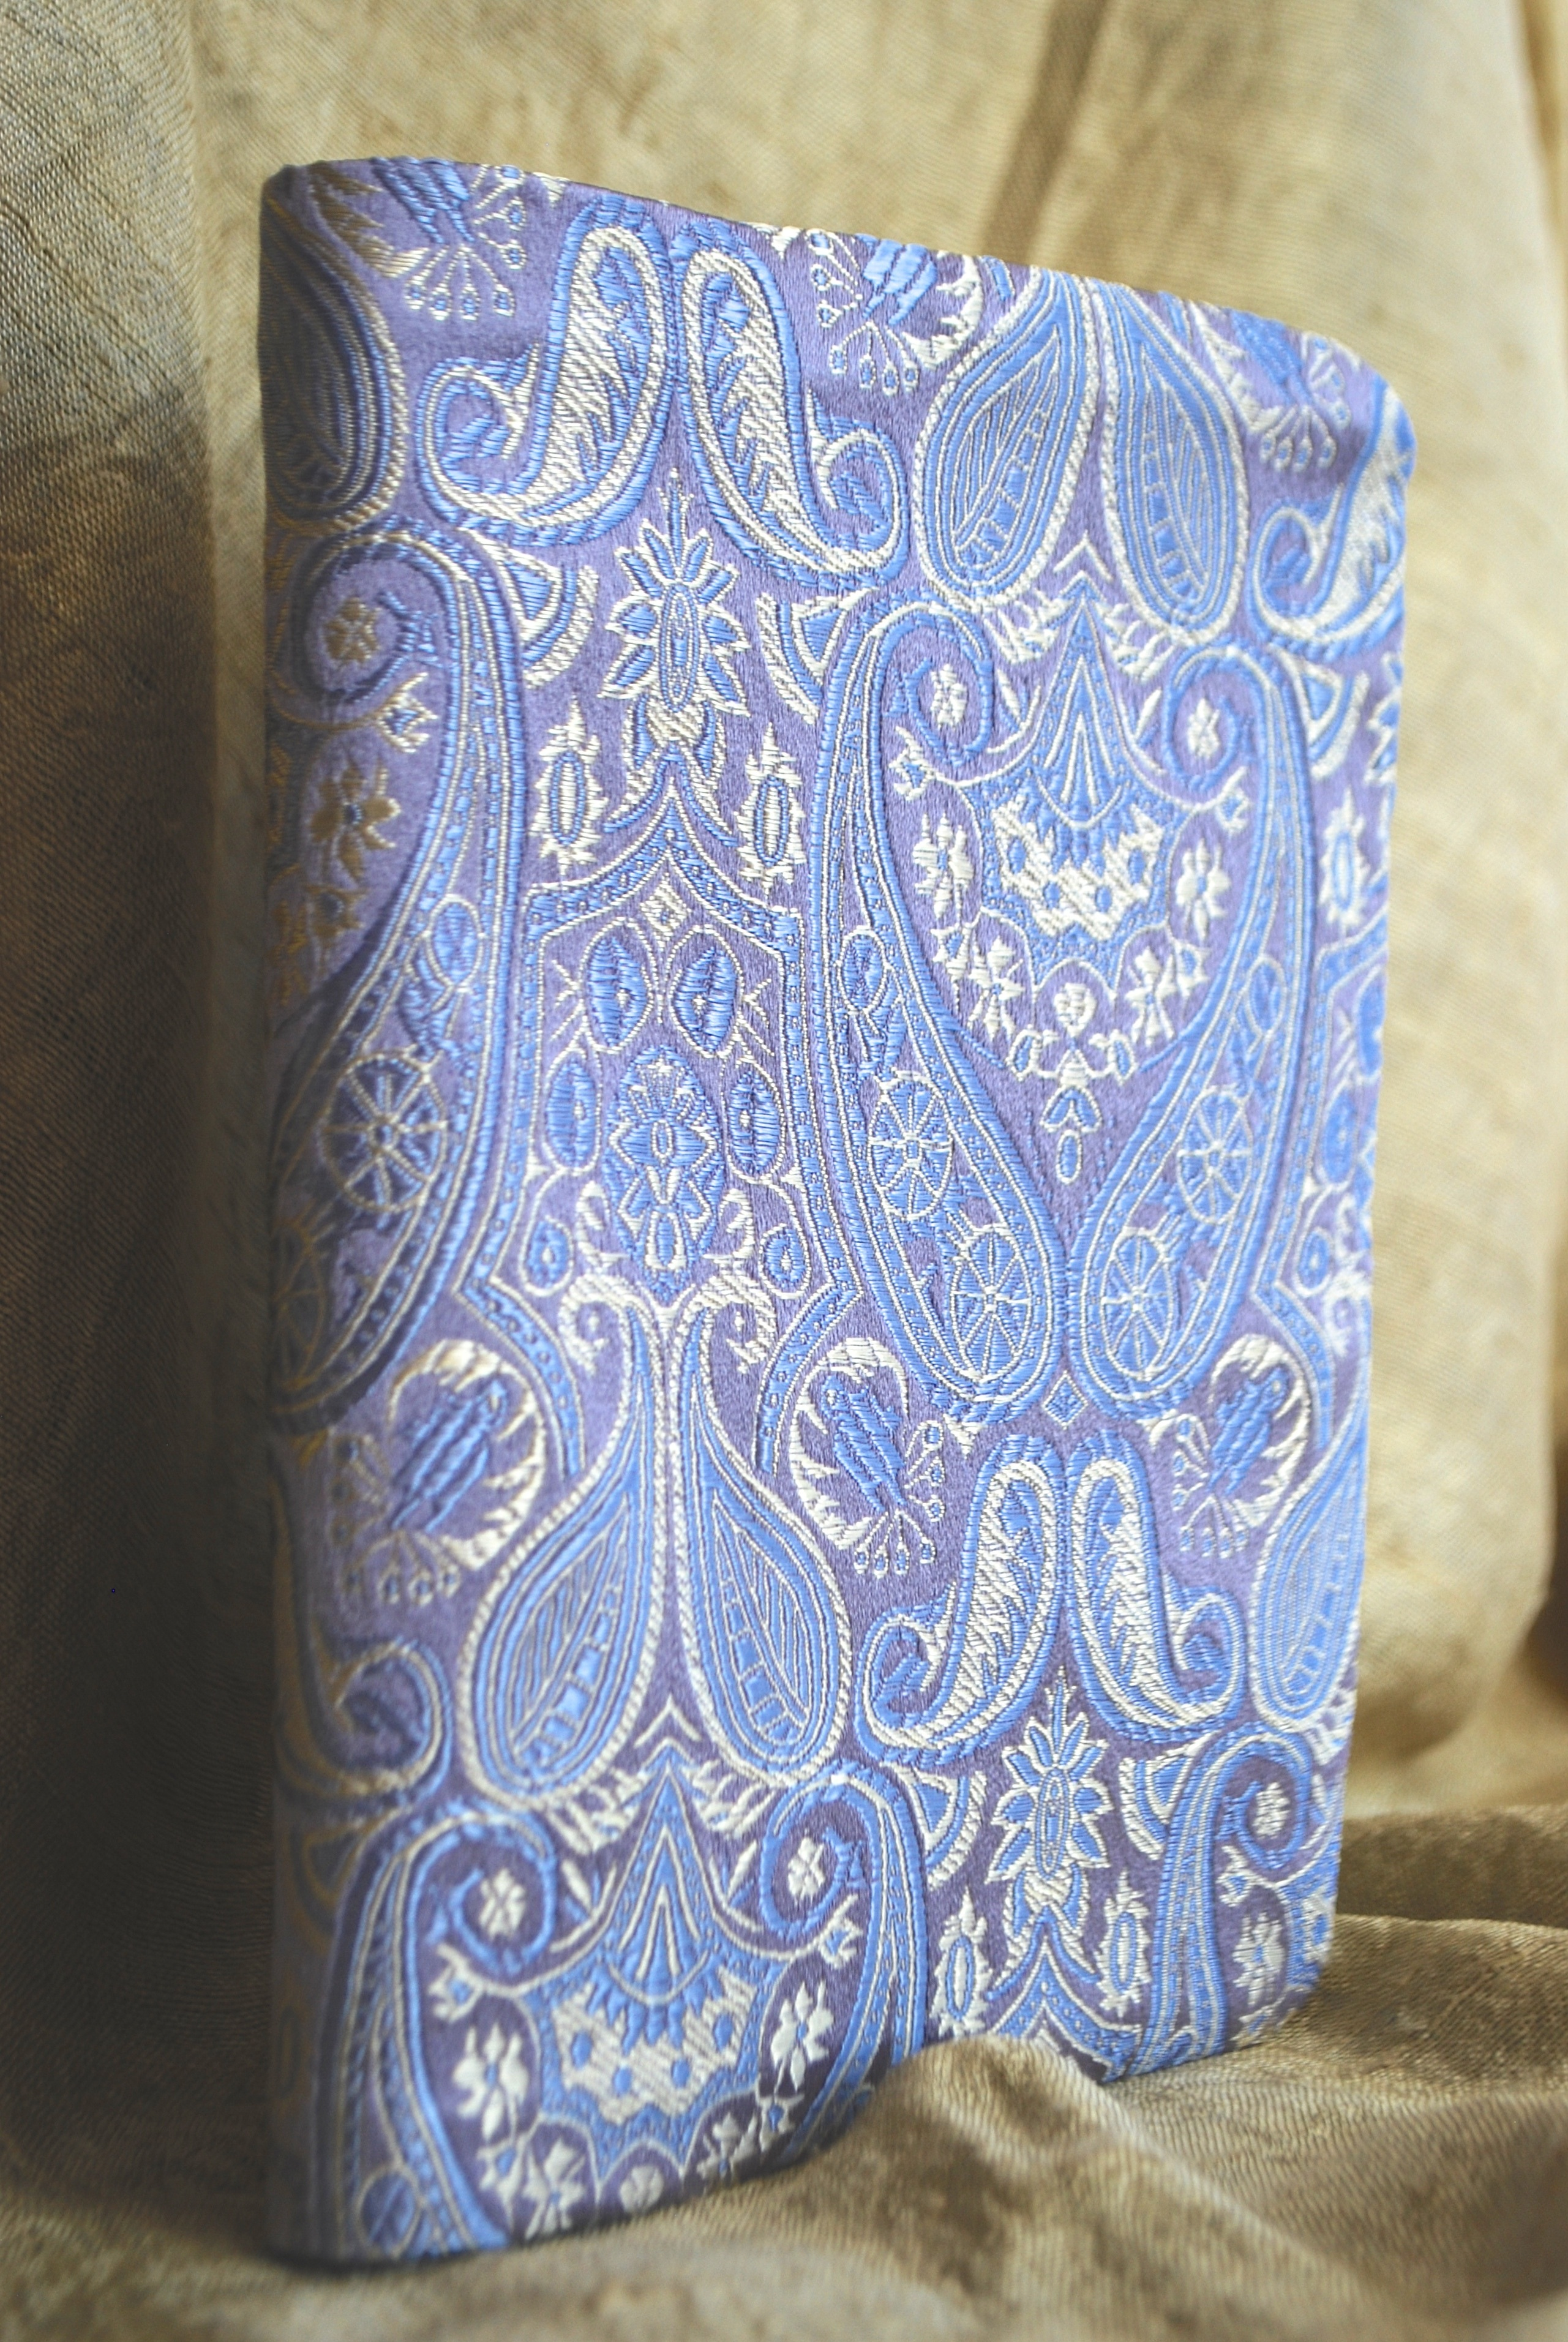 'Lavender Paisley' silk prayer book cover